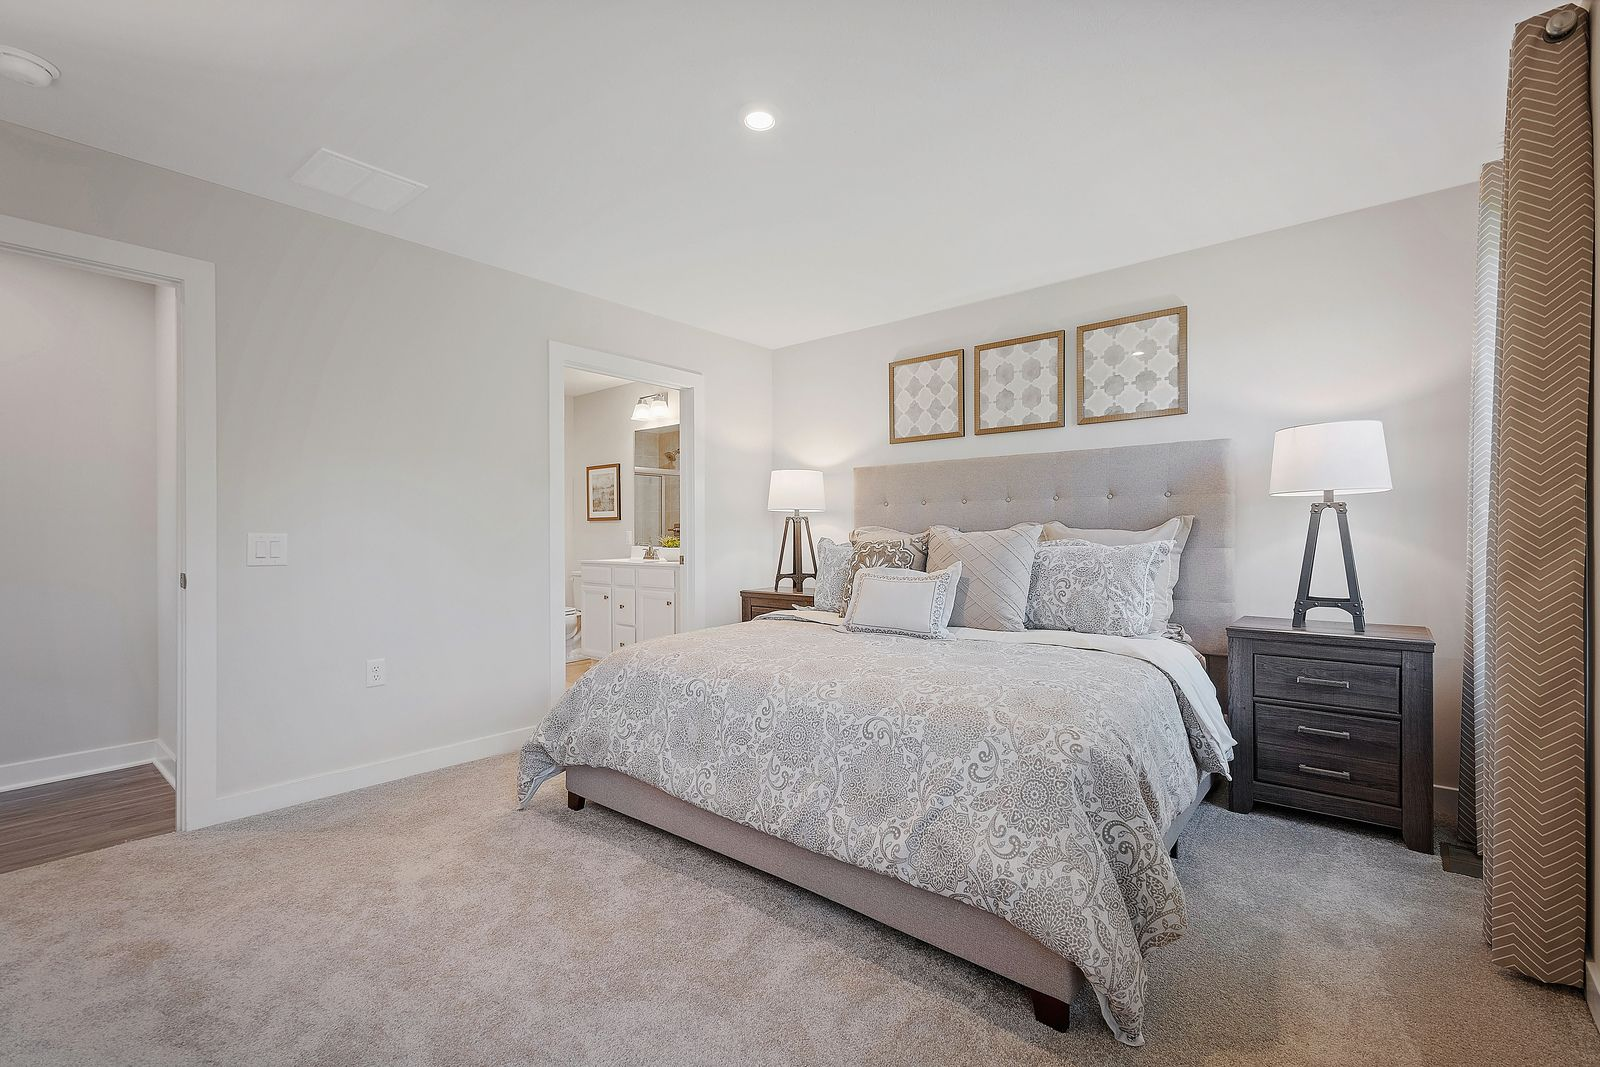 Bedroom featured in the Barbados Isle By Ryan Homes in Columbus, OH